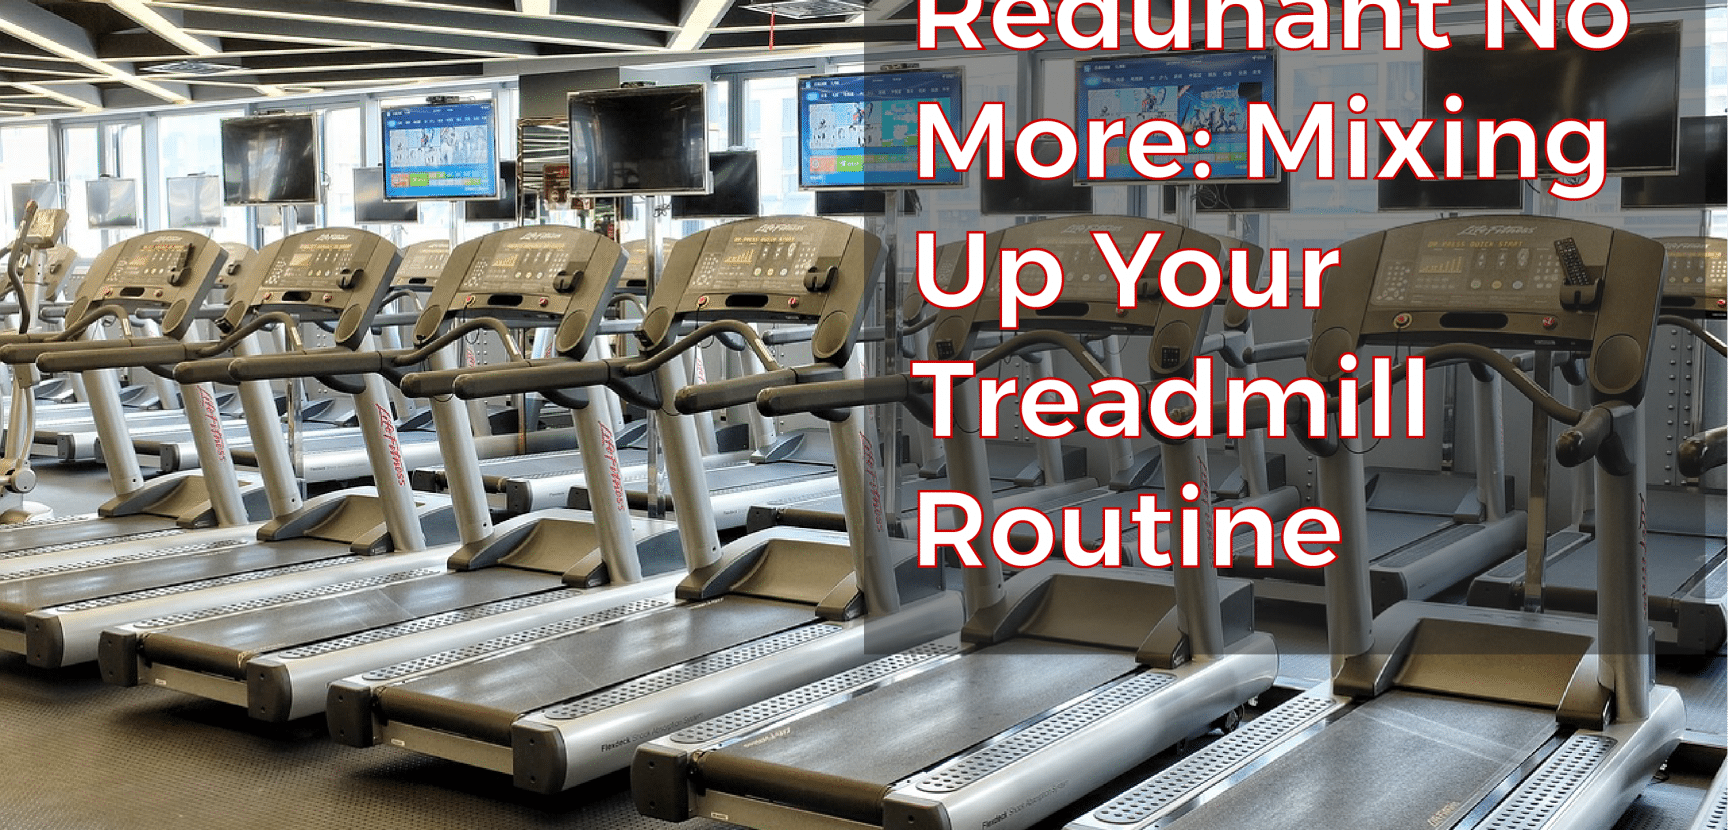 Mixing Up Your Treadmill Routine